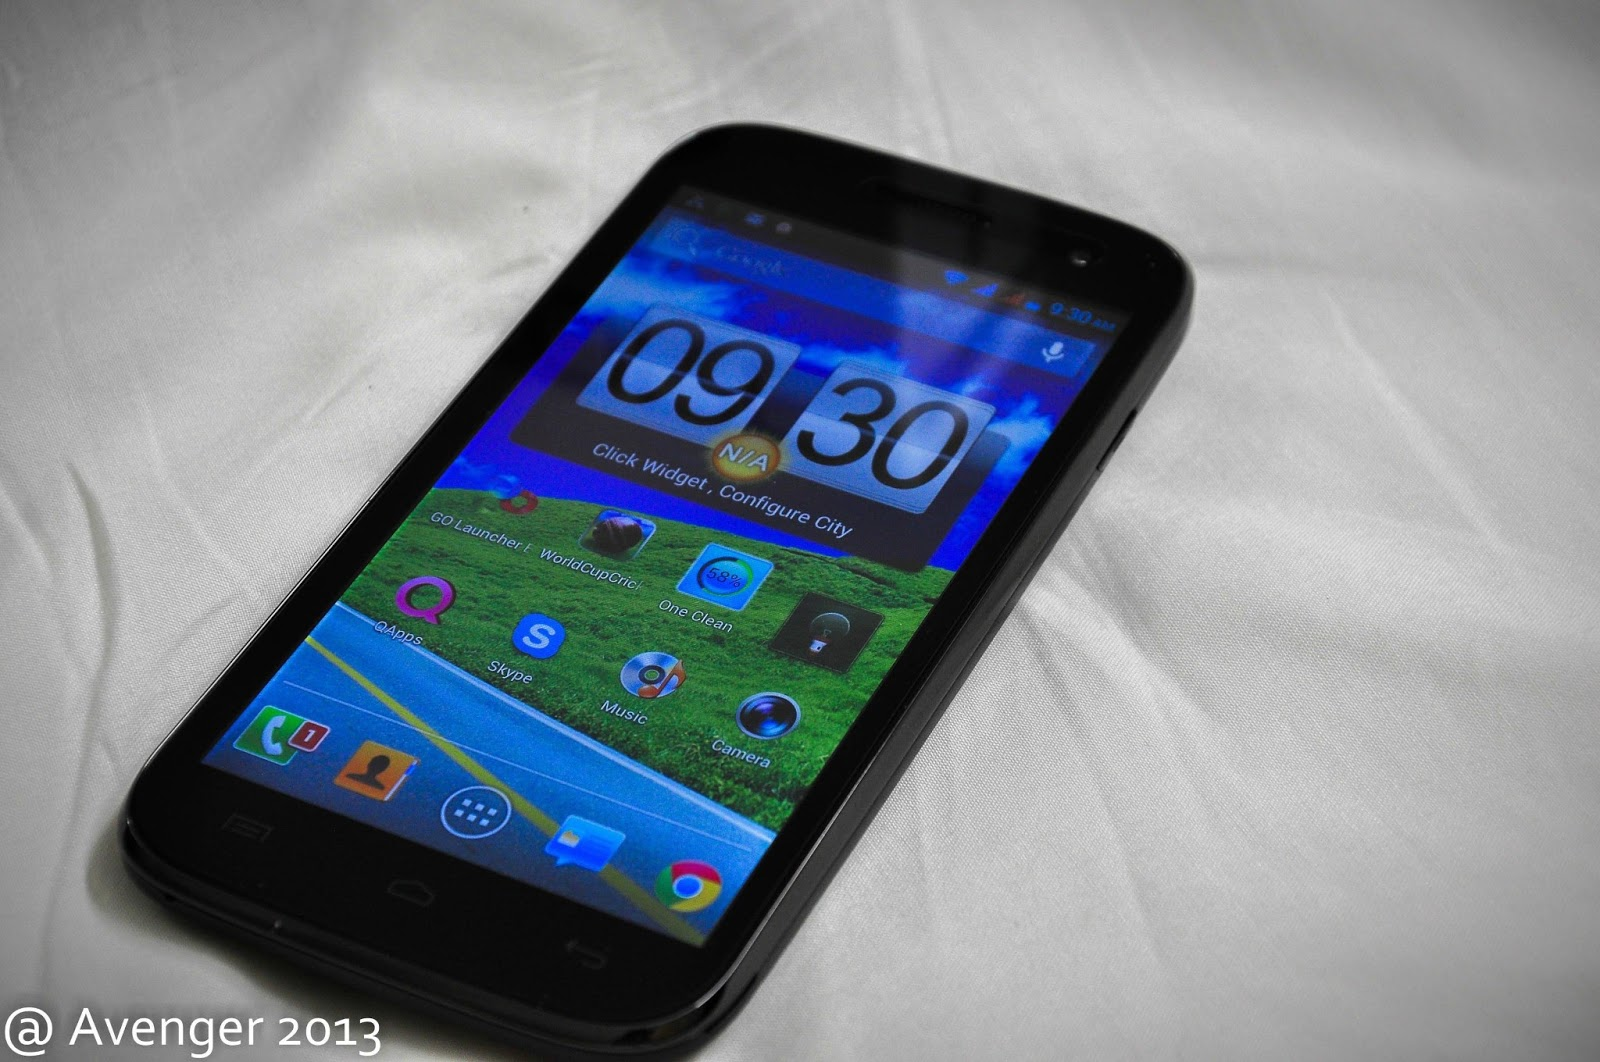 AdilTech(Gadgets Reviews): QMOBILE NOIR A900 VS A600 PICS